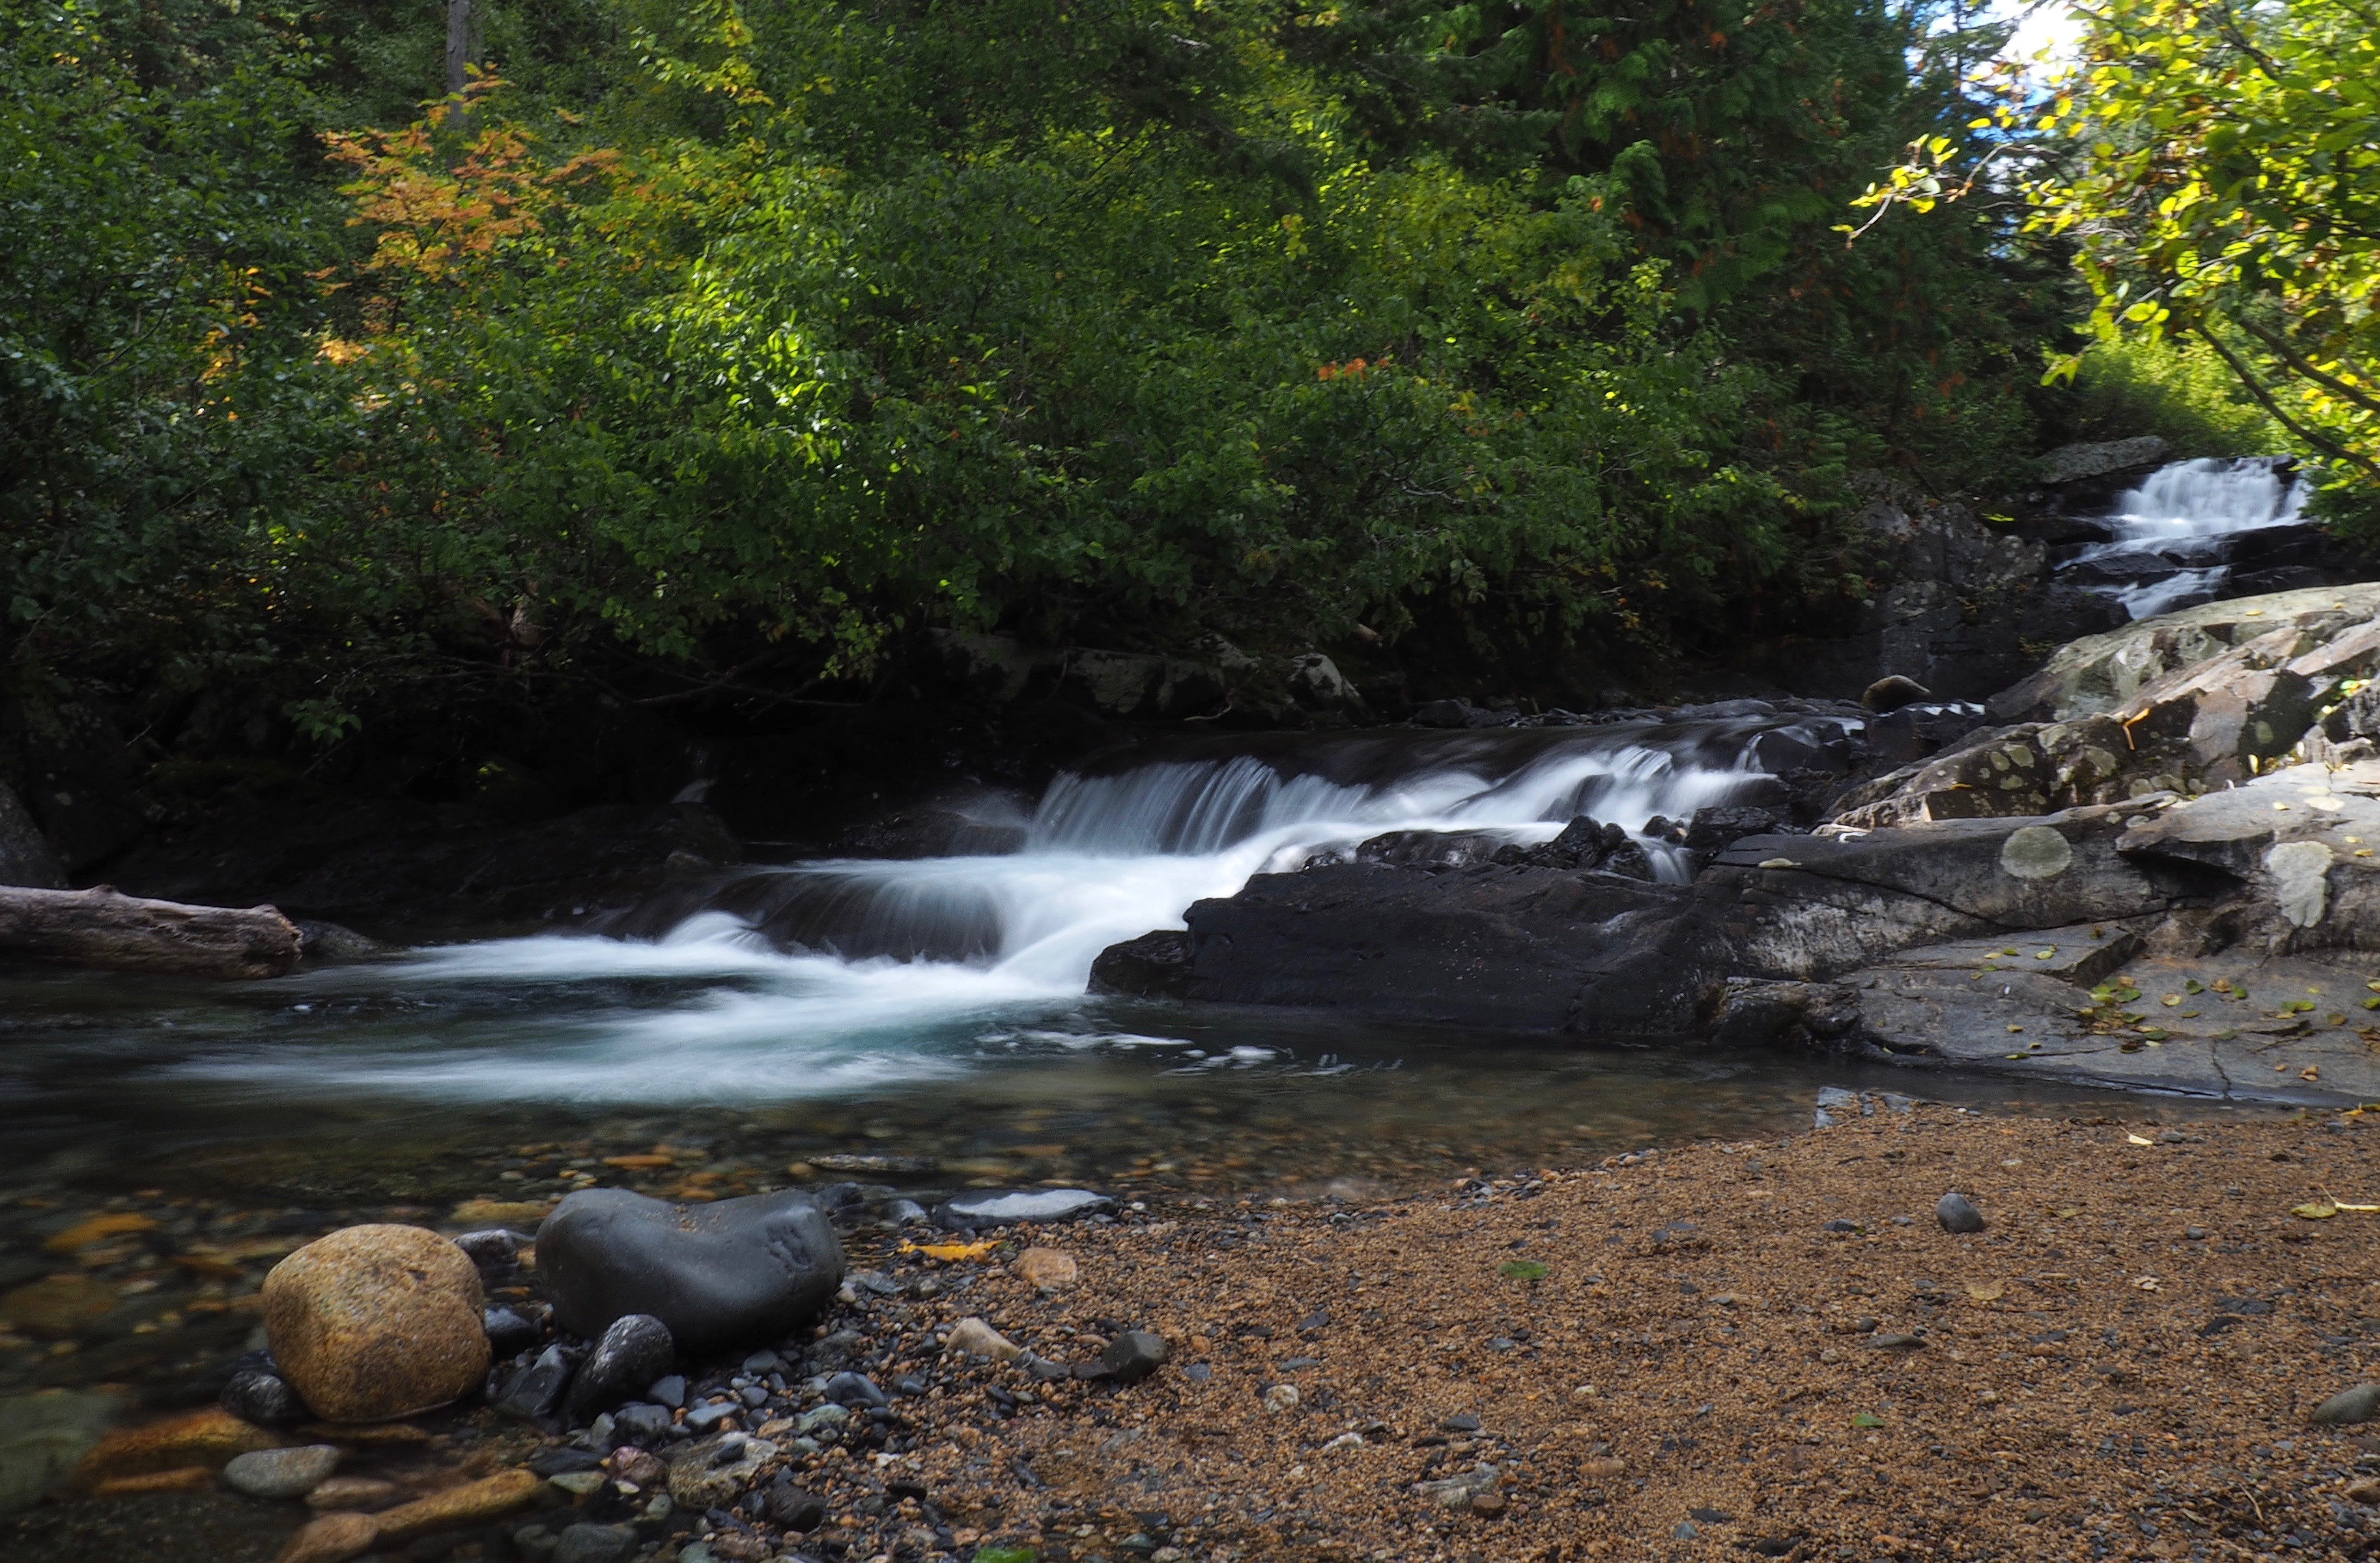 Cedar Creek approaches the falls from beyond sight by a series of shallow stairsteps. Cedar Falls Trail, September 21, 2016.